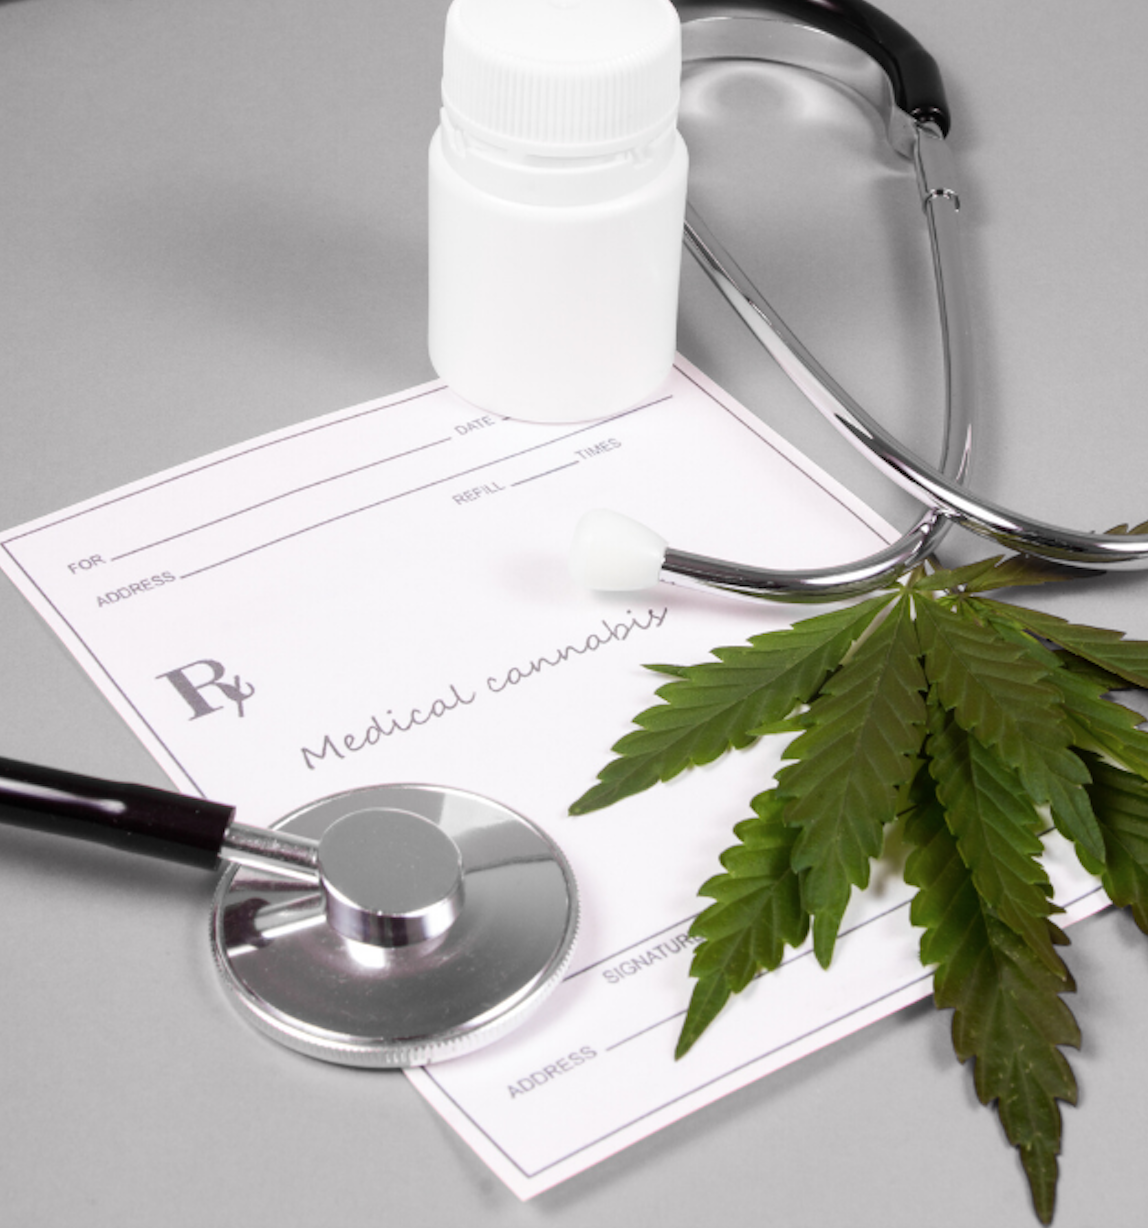 Medical Marijuana - More science than you thought.